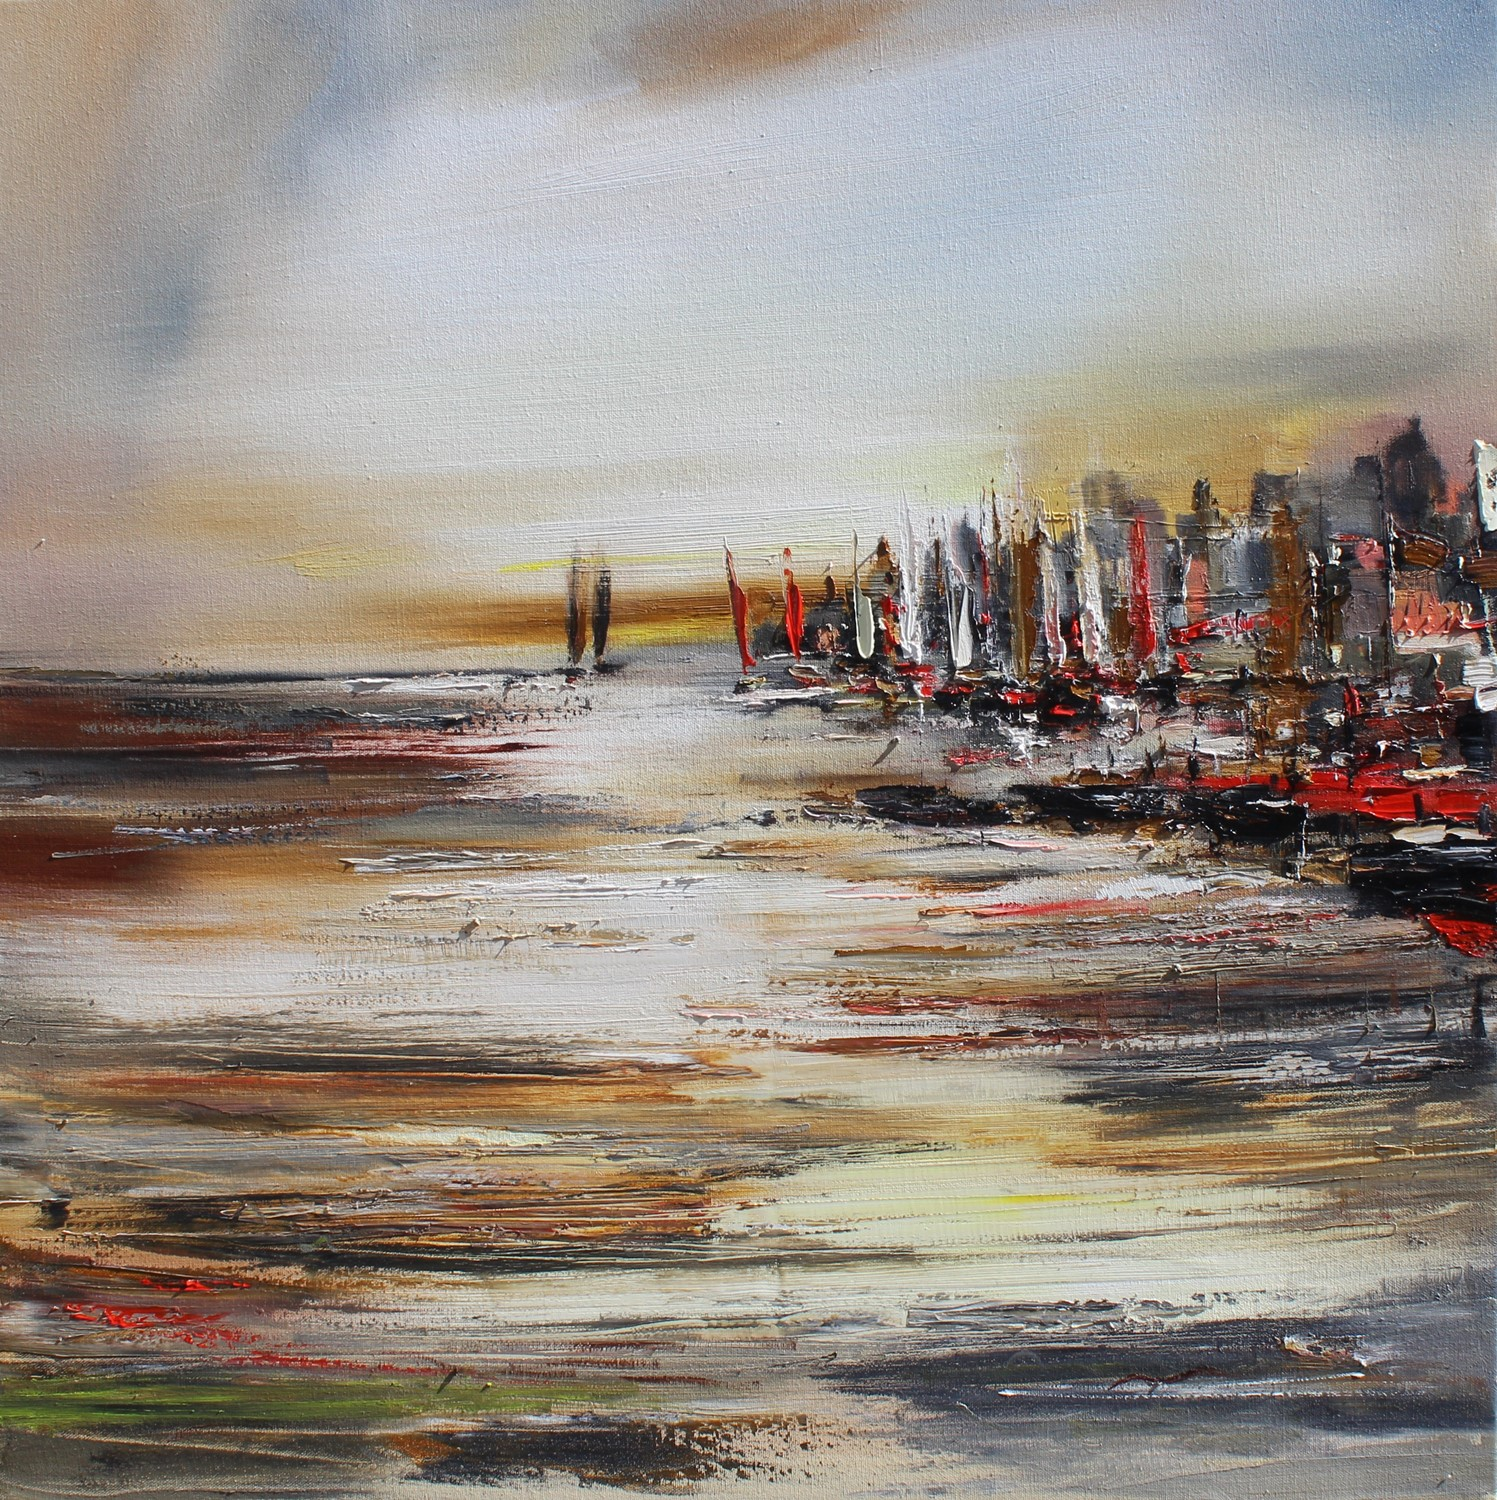 'Out by The East Coast' by artist Rosanne Barr